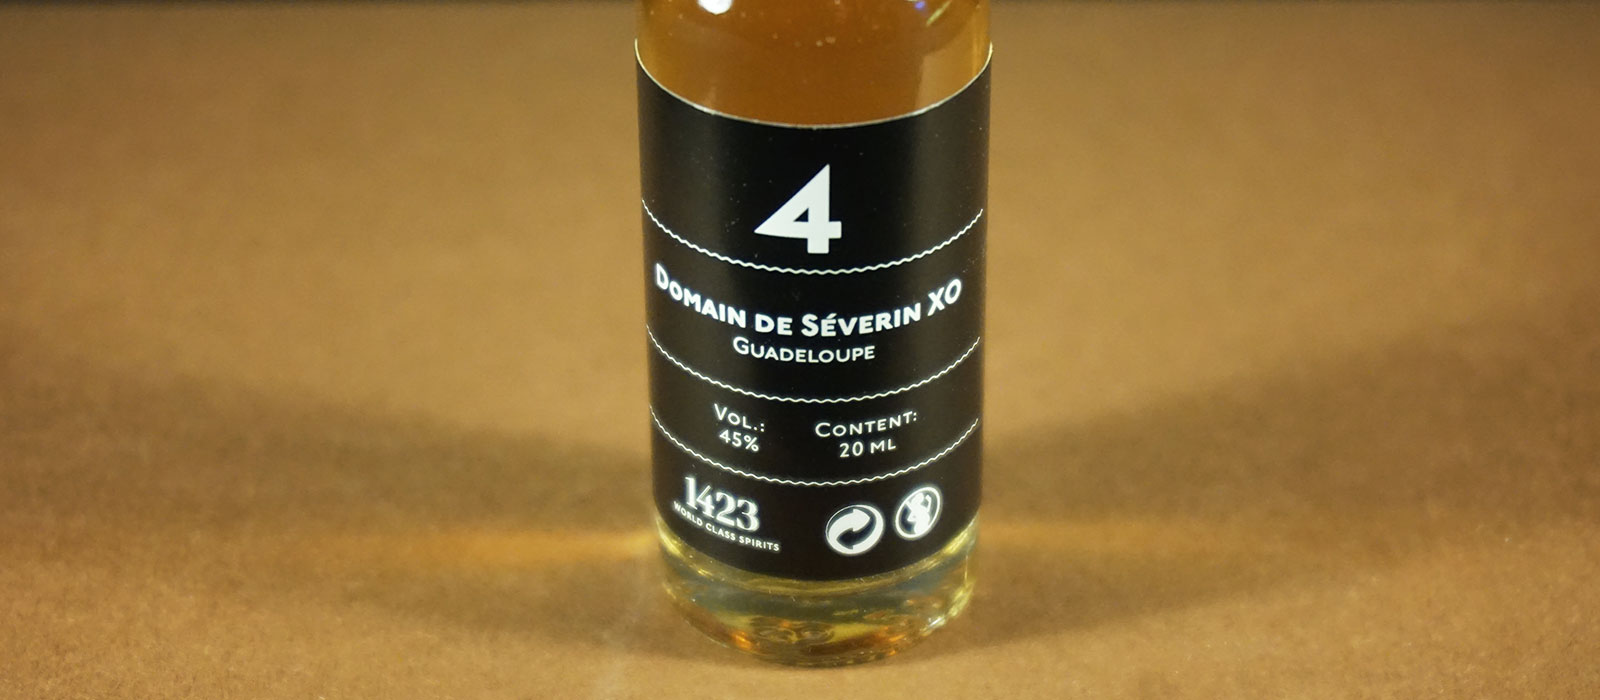 24 Days of Rum 2017: Dag 4 – Domaine de Séverin XO